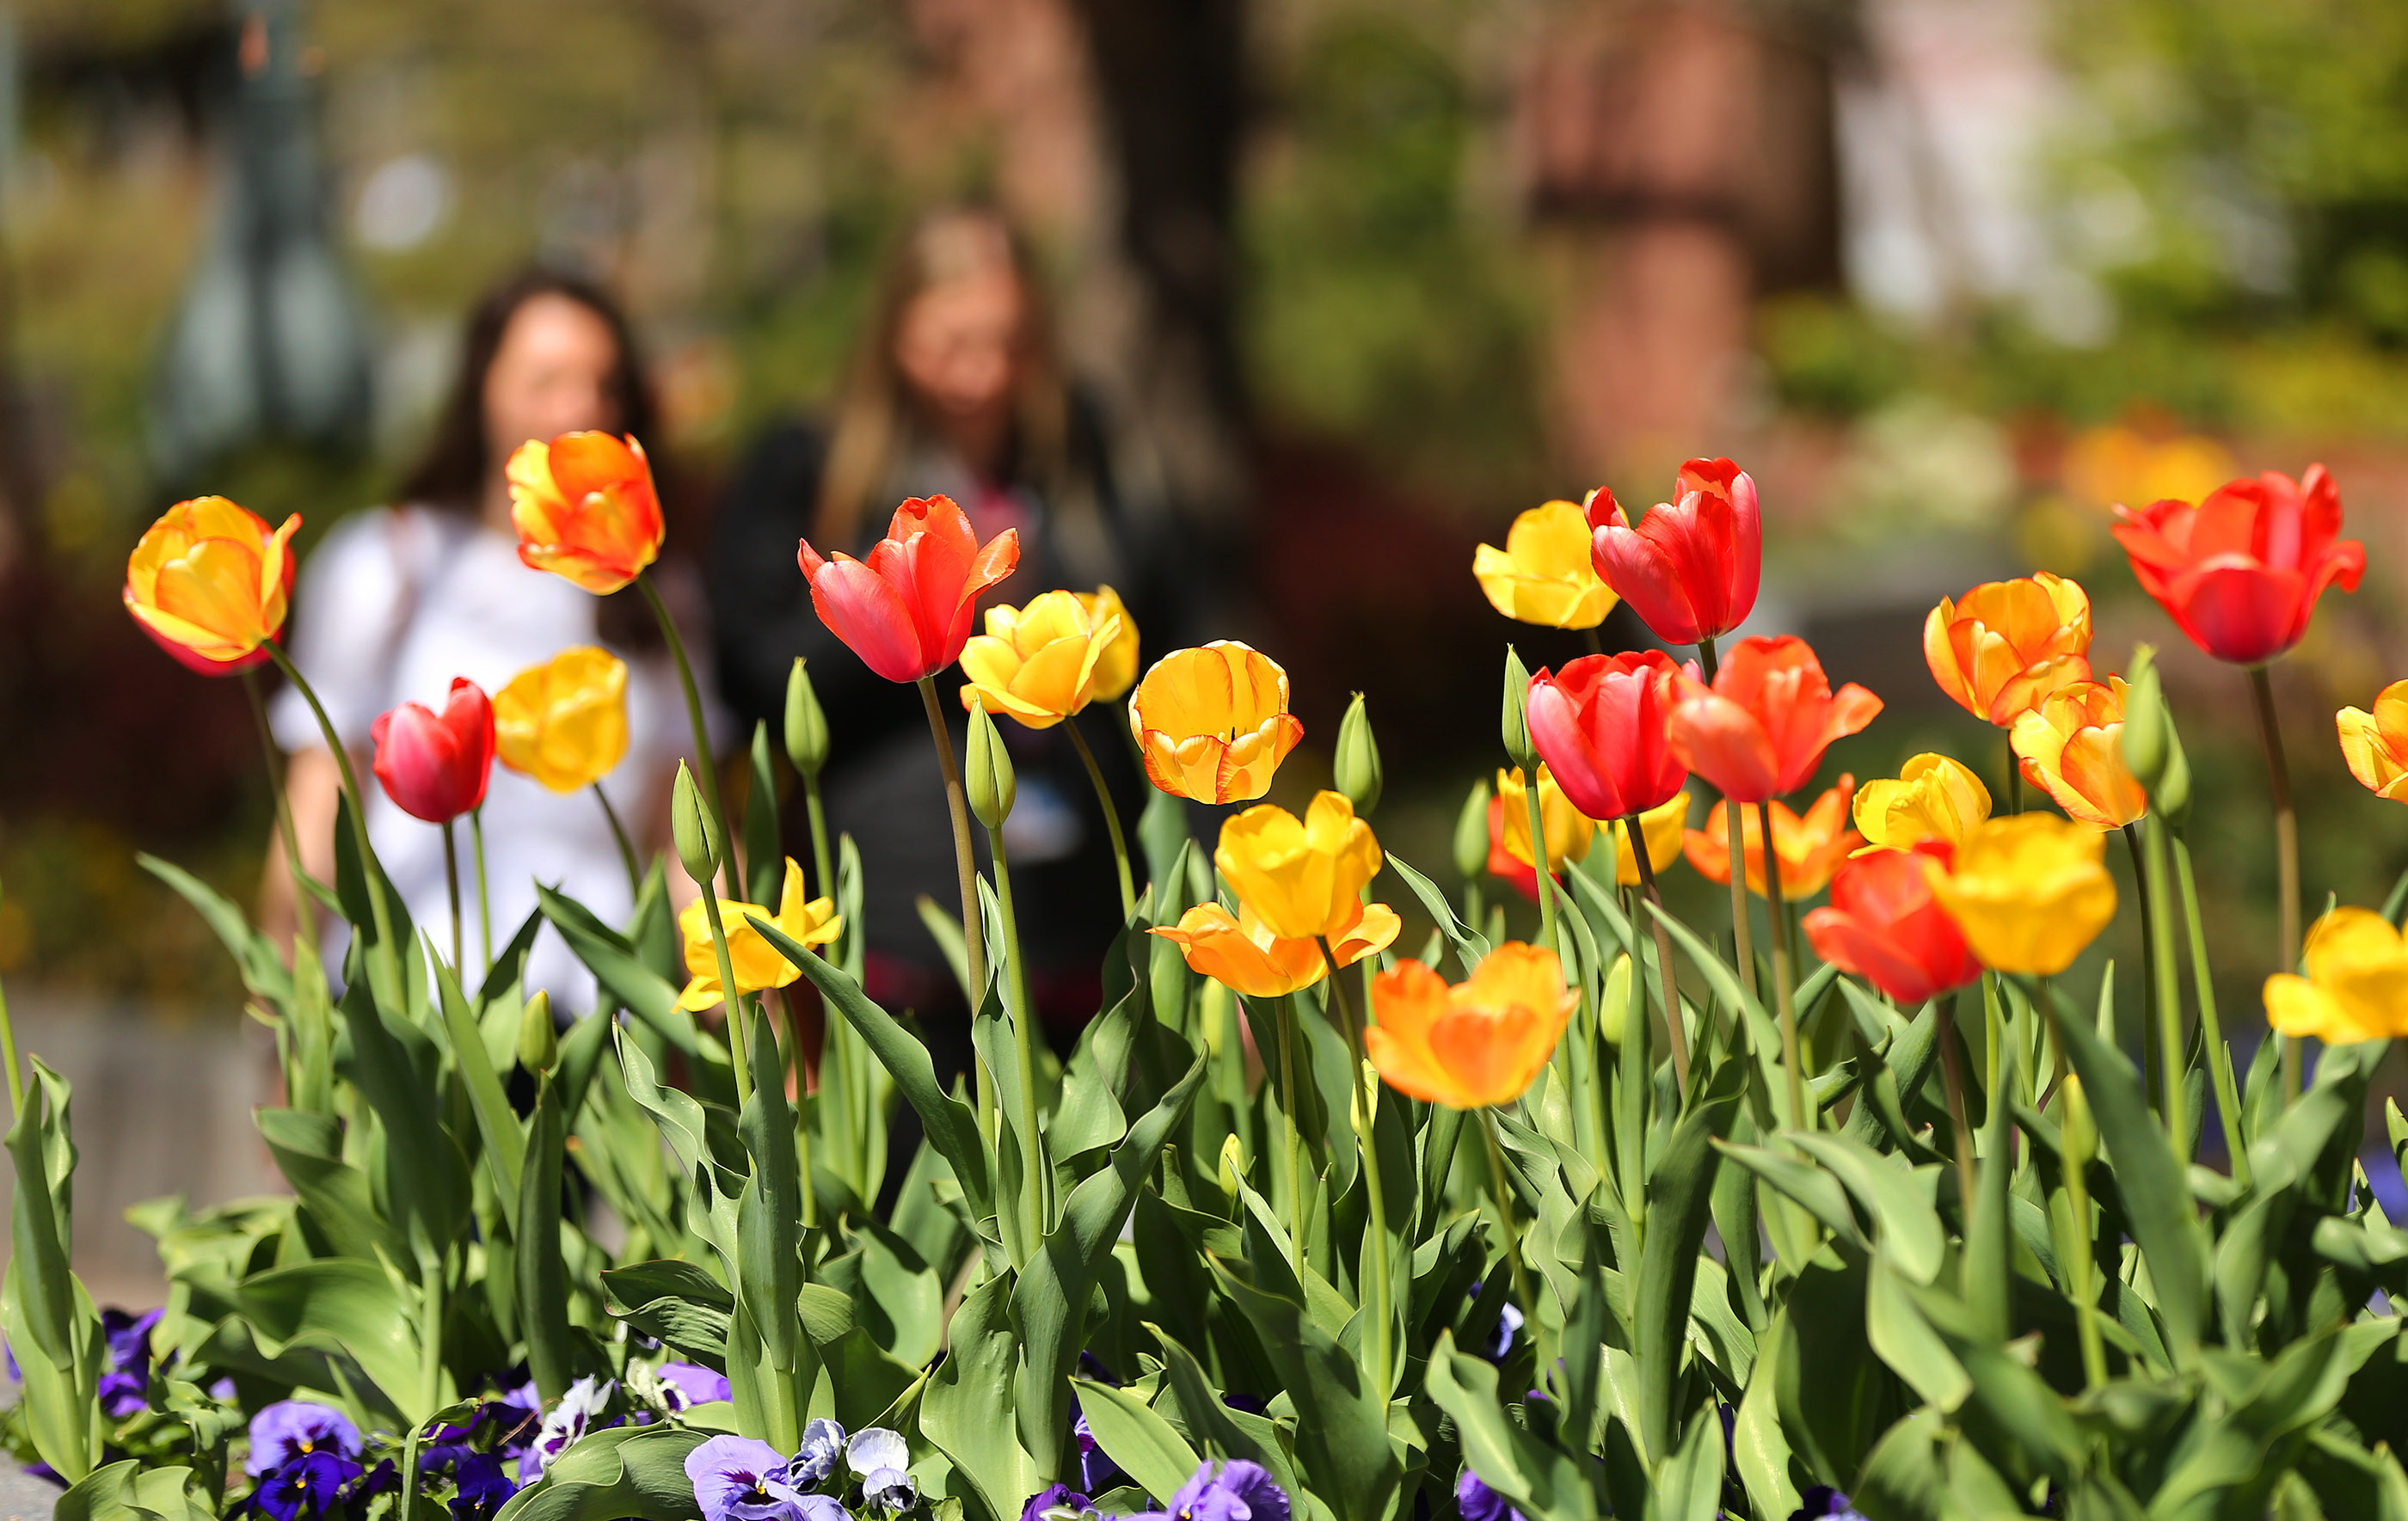 Visitors walk past flowers on the grounds of the Salt Lake Temple in Salt Lake City on Friday, April 19, 2019. Leadership of The Church of Jesus Christ of Latter-day Saints announced renovation plans for the Salt Lake Temple and changes to the temple grounds and Temple Square.